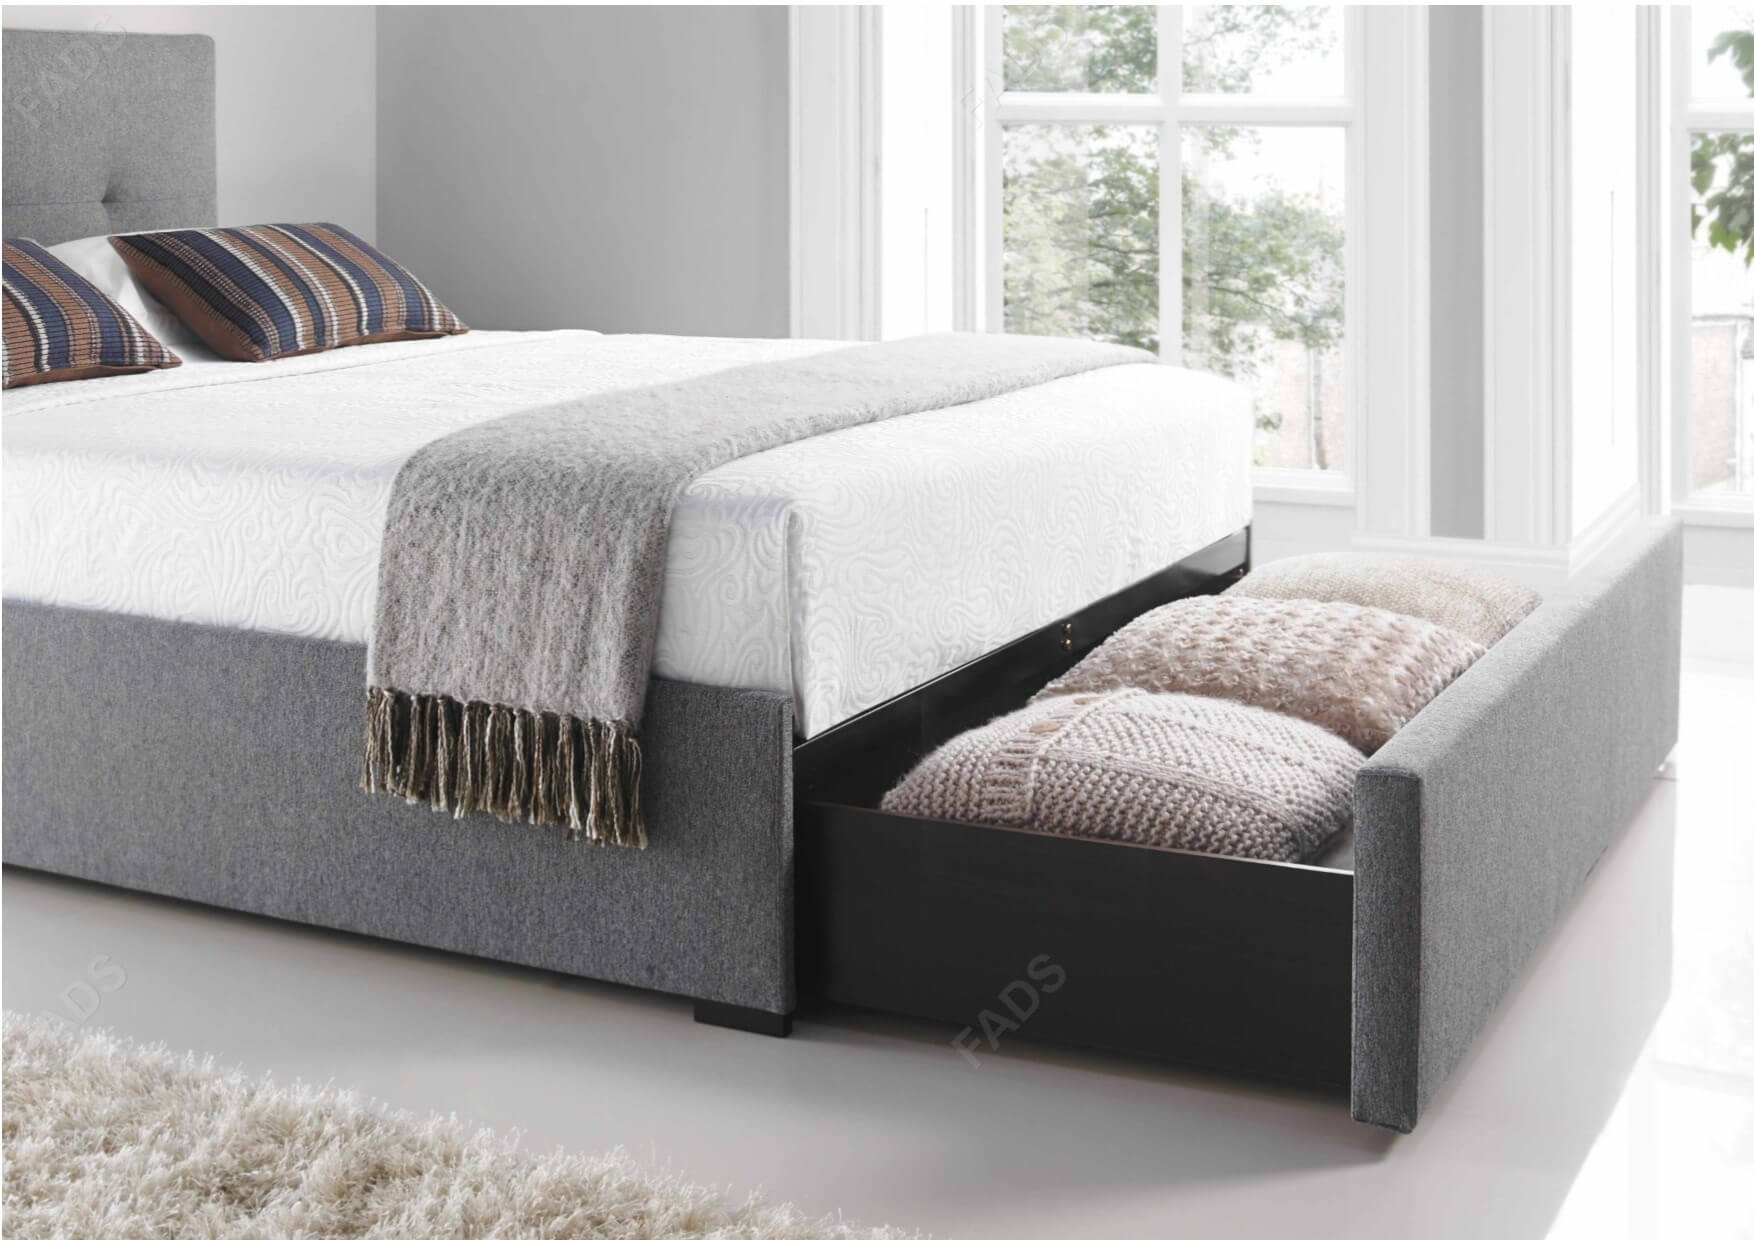 Boat Bed With Trundle And Toy Box Storage: Kaydian Hexham Drawer Bed Smoke Grey